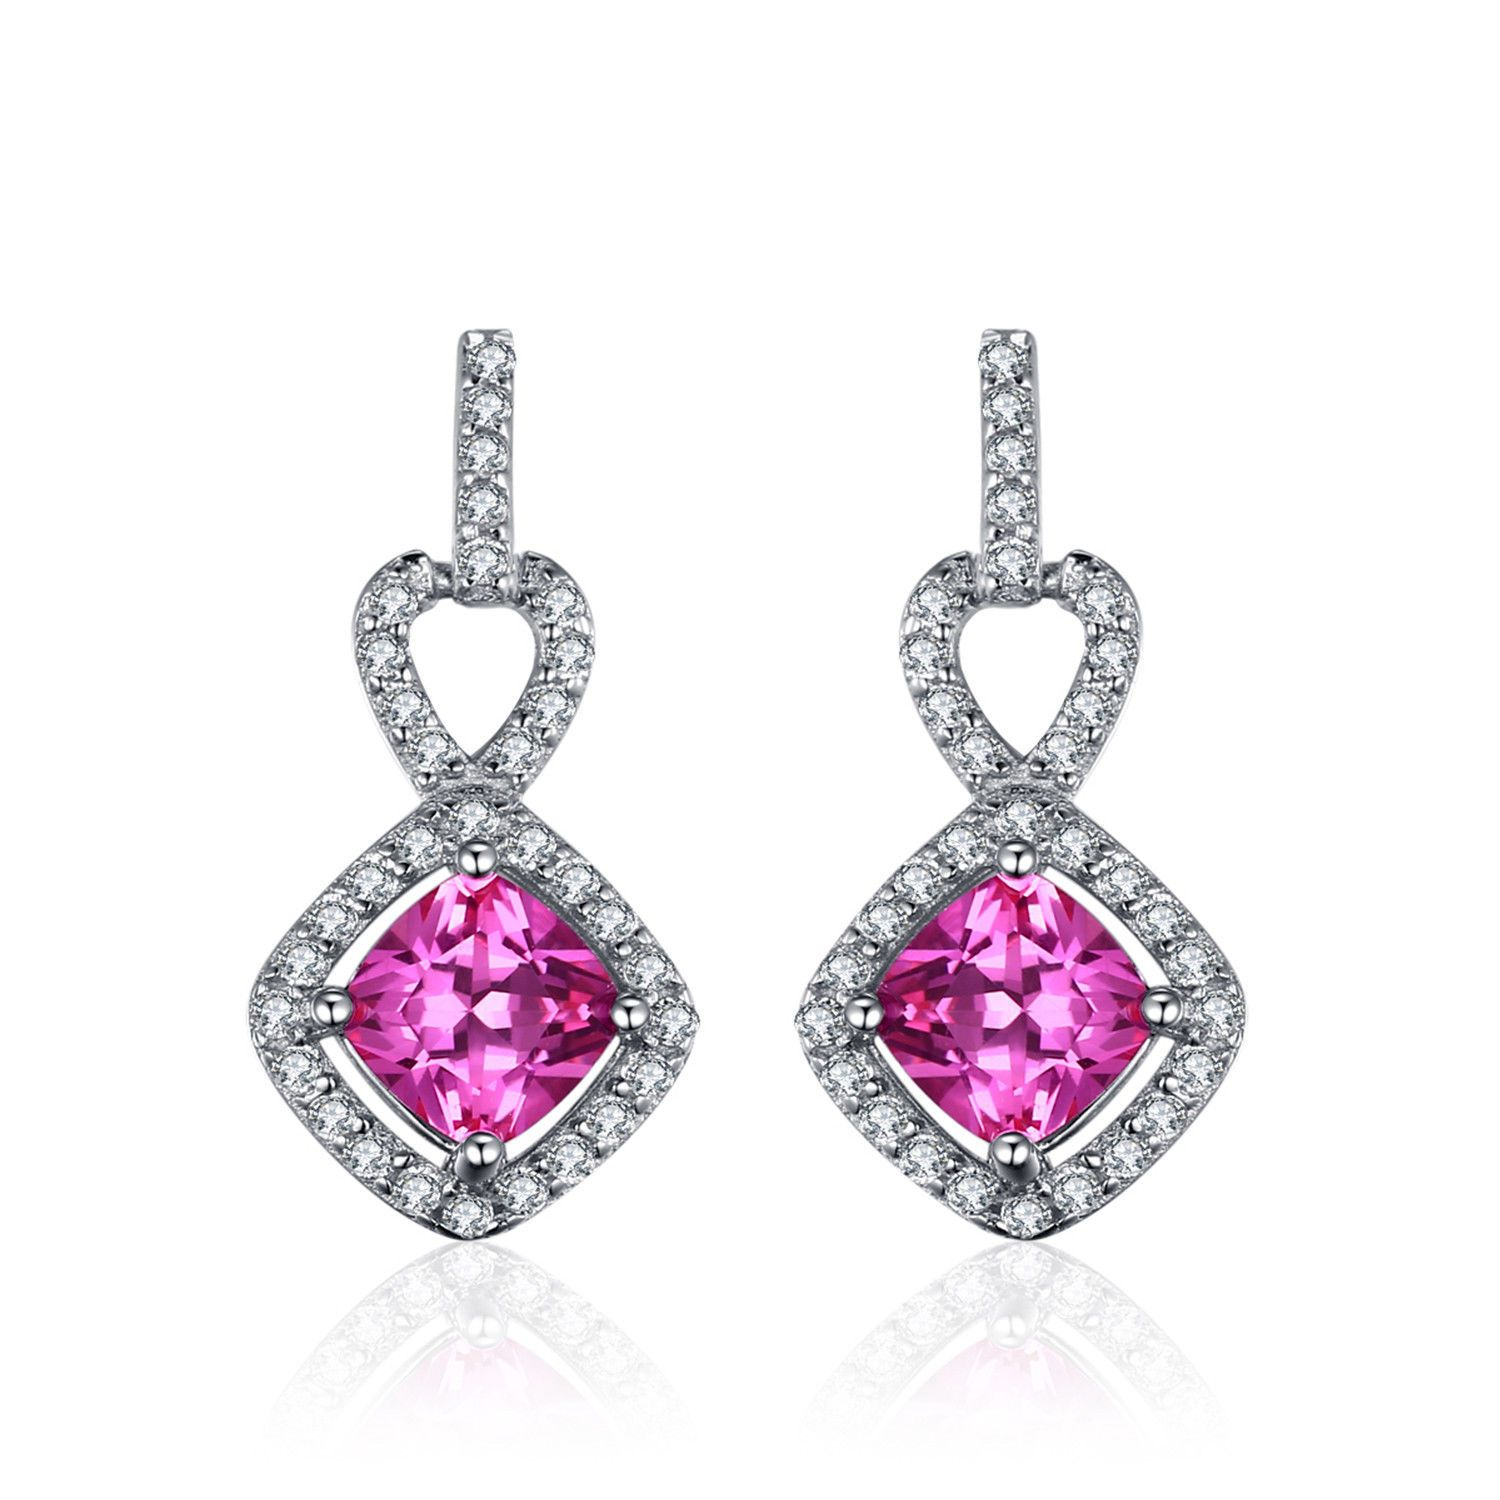 Jewelrypalace Cushion 1.4Ct Square Created Pink Sapphire Drop Earrings925 Silver